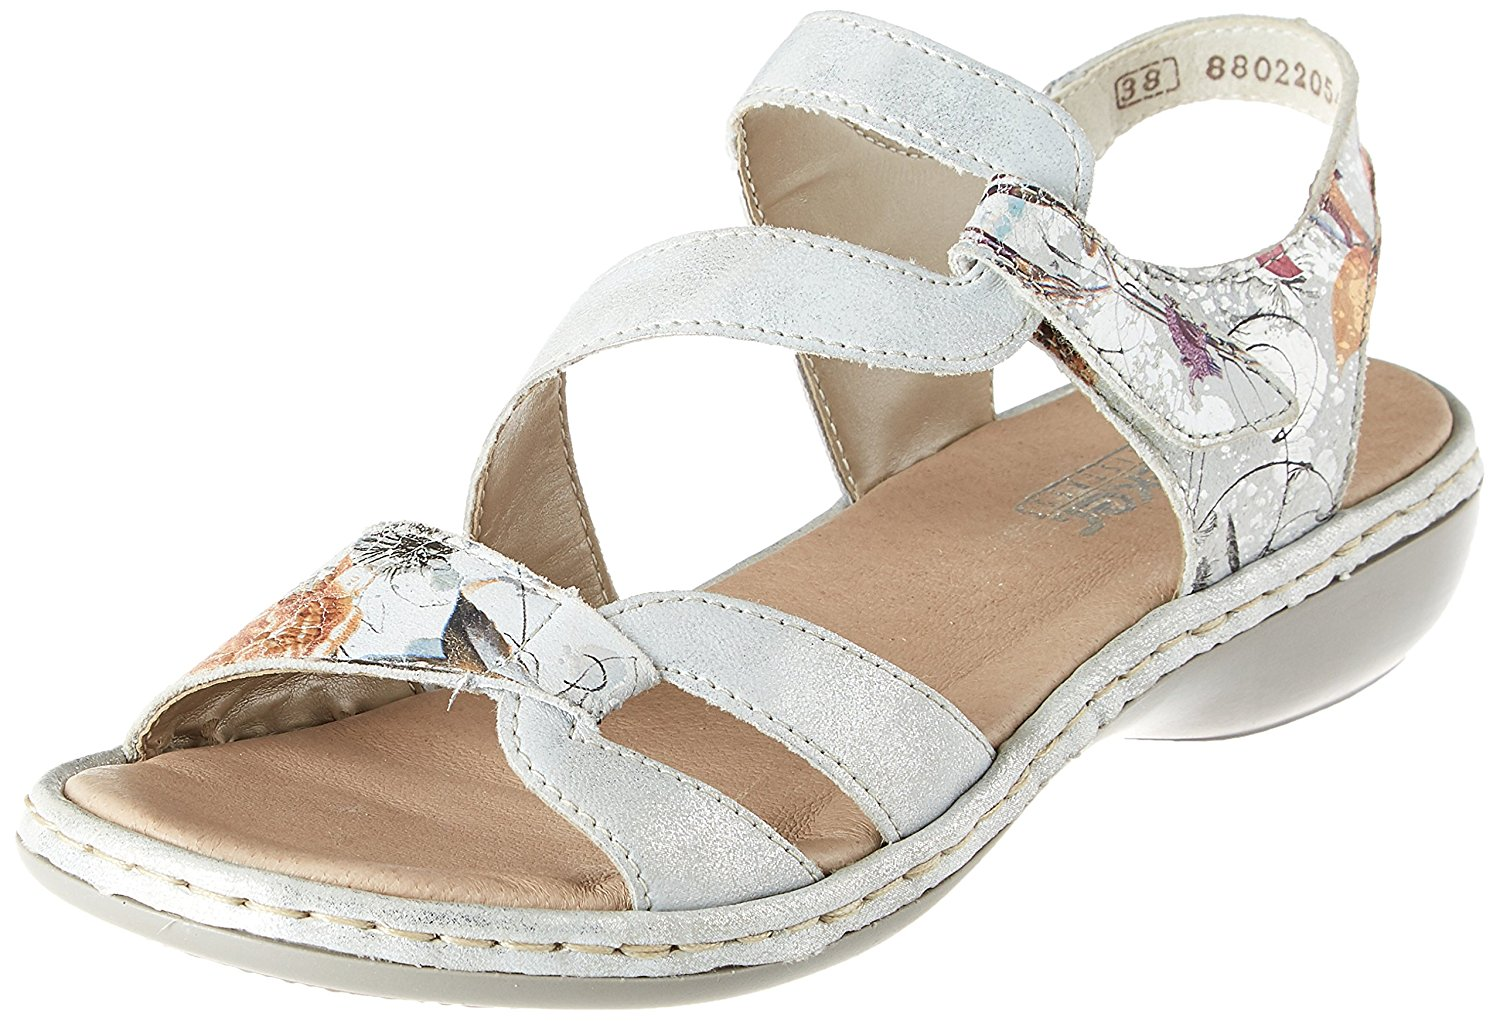 4eacfbe8621254 Get Quotations · Rieker Orbit Womens Casual Sandals